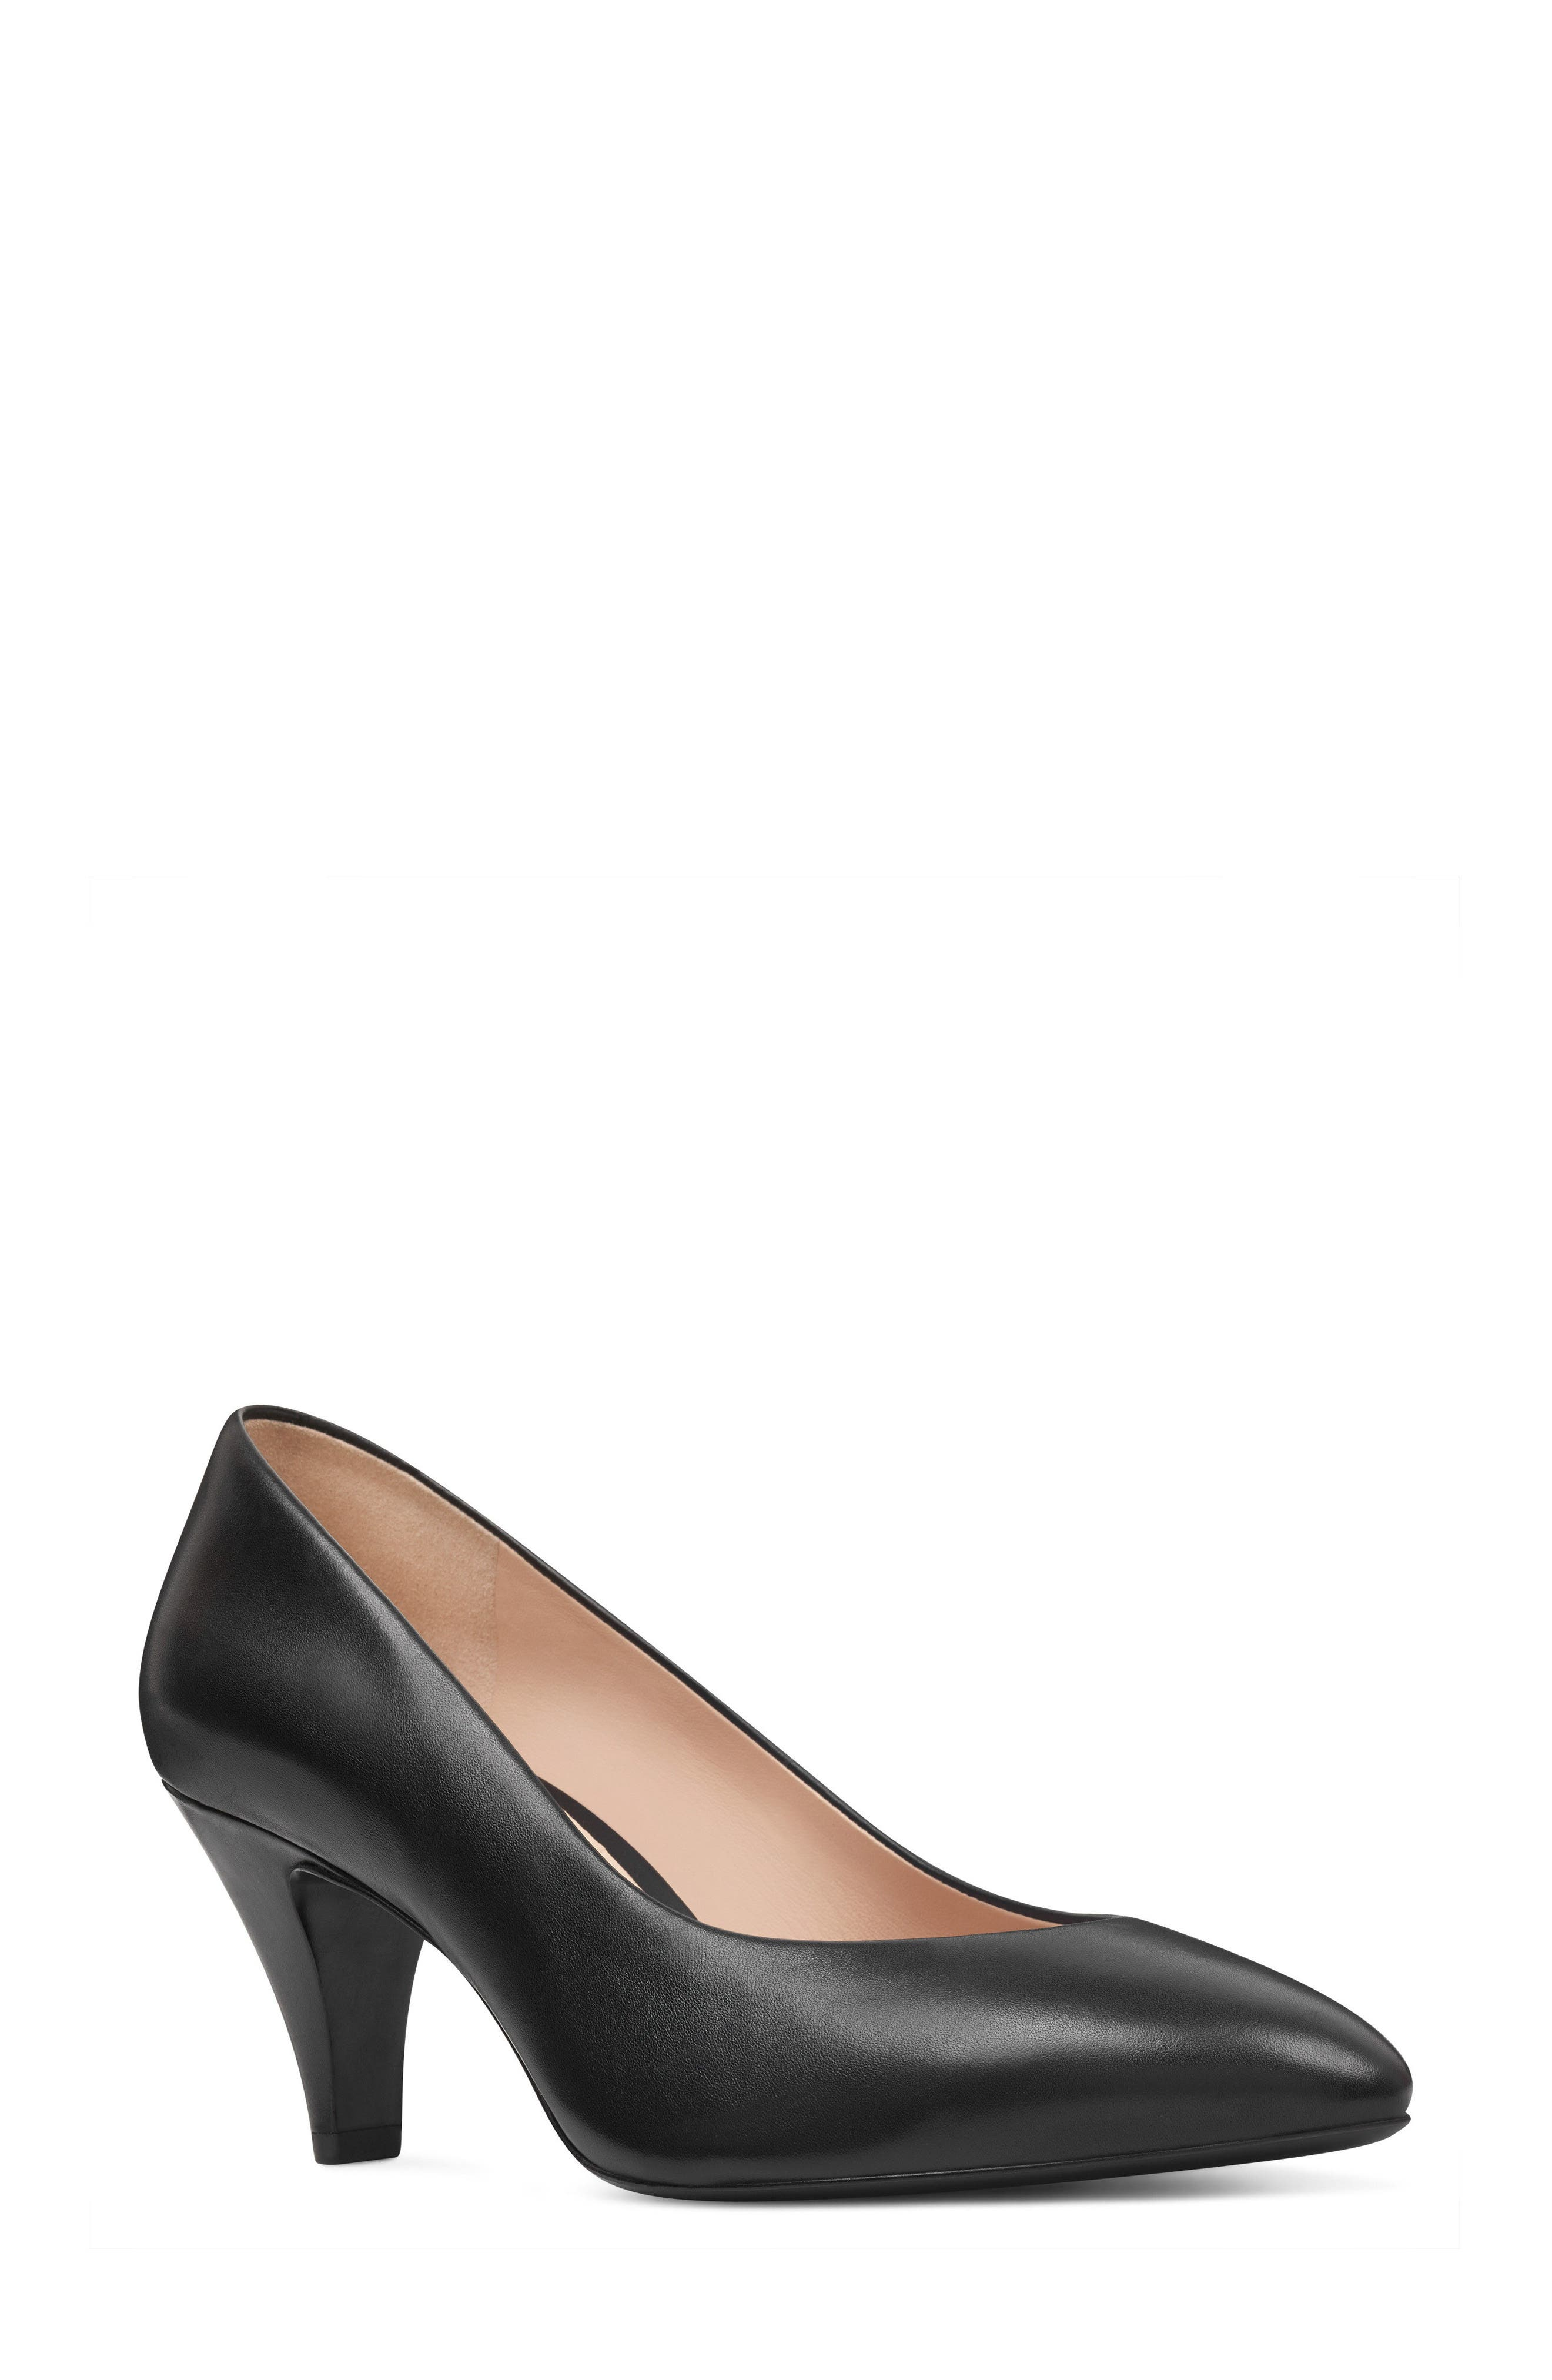 Faith - 40th Anniversary Capsule Collection Pump,                             Main thumbnail 1, color,                             BLACK LEATHER